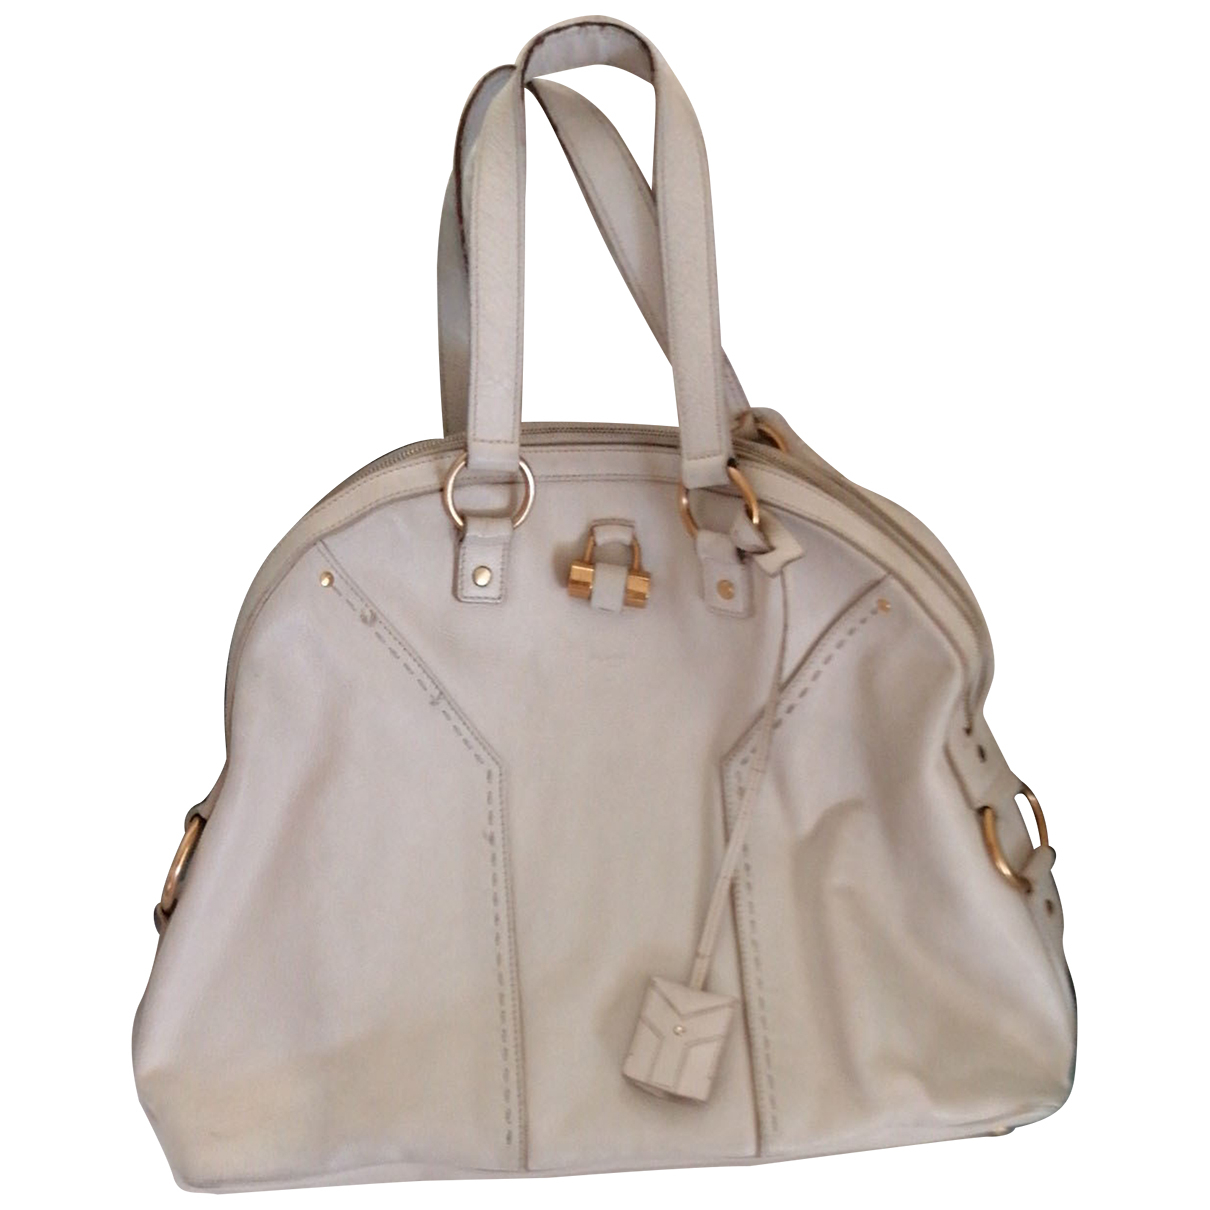 Yves Saint Laurent Muse Beige Leather handbag for Women N